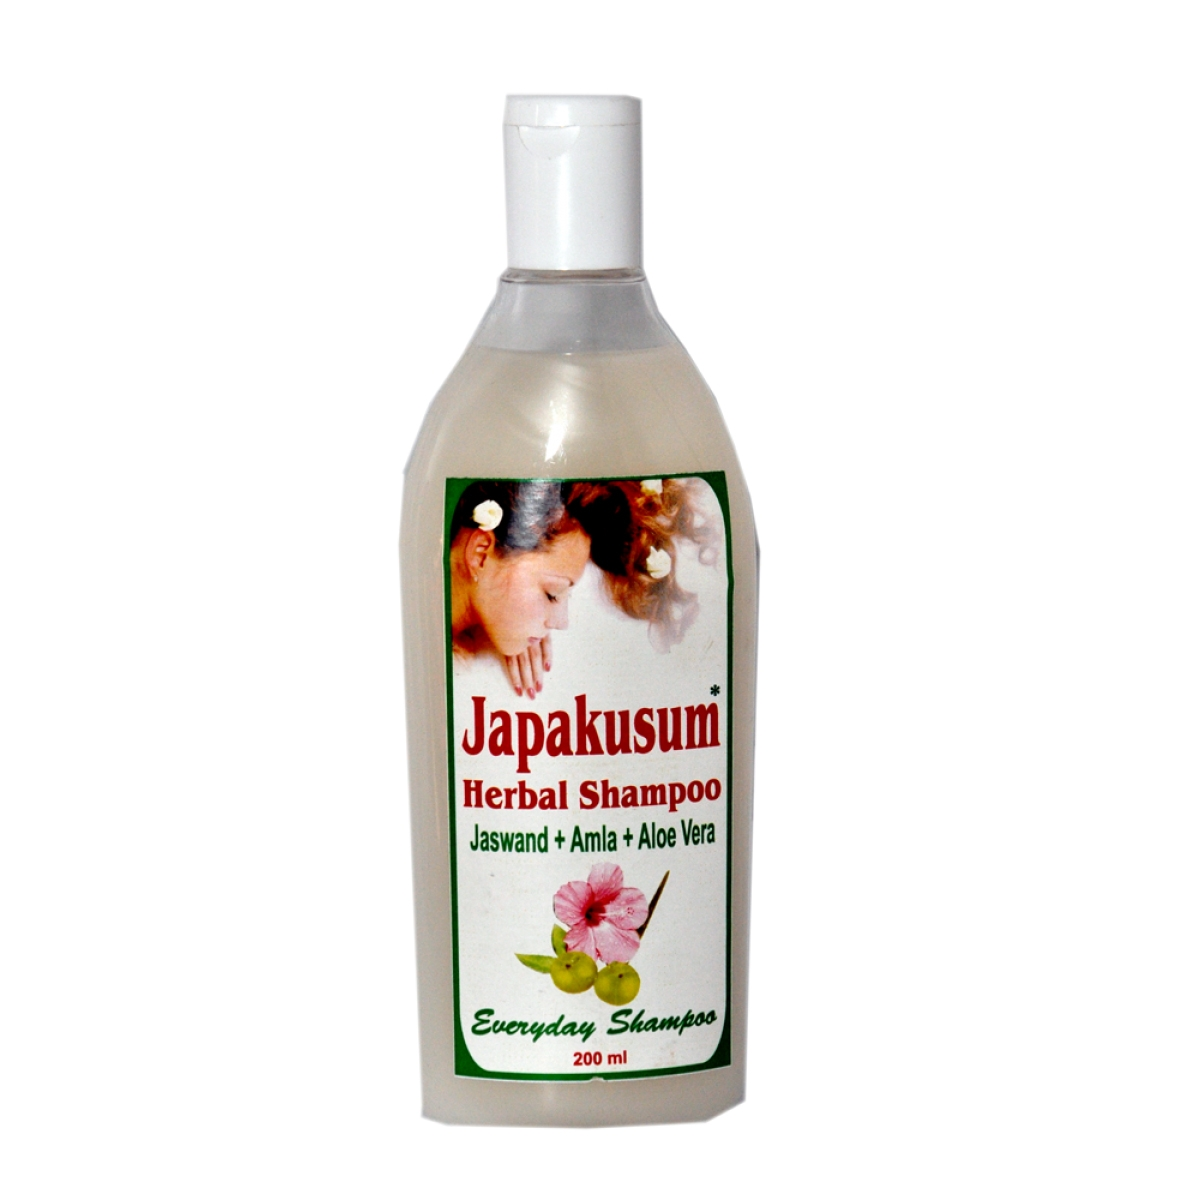 Japakusum Shampoo In Jammu And Kashmir